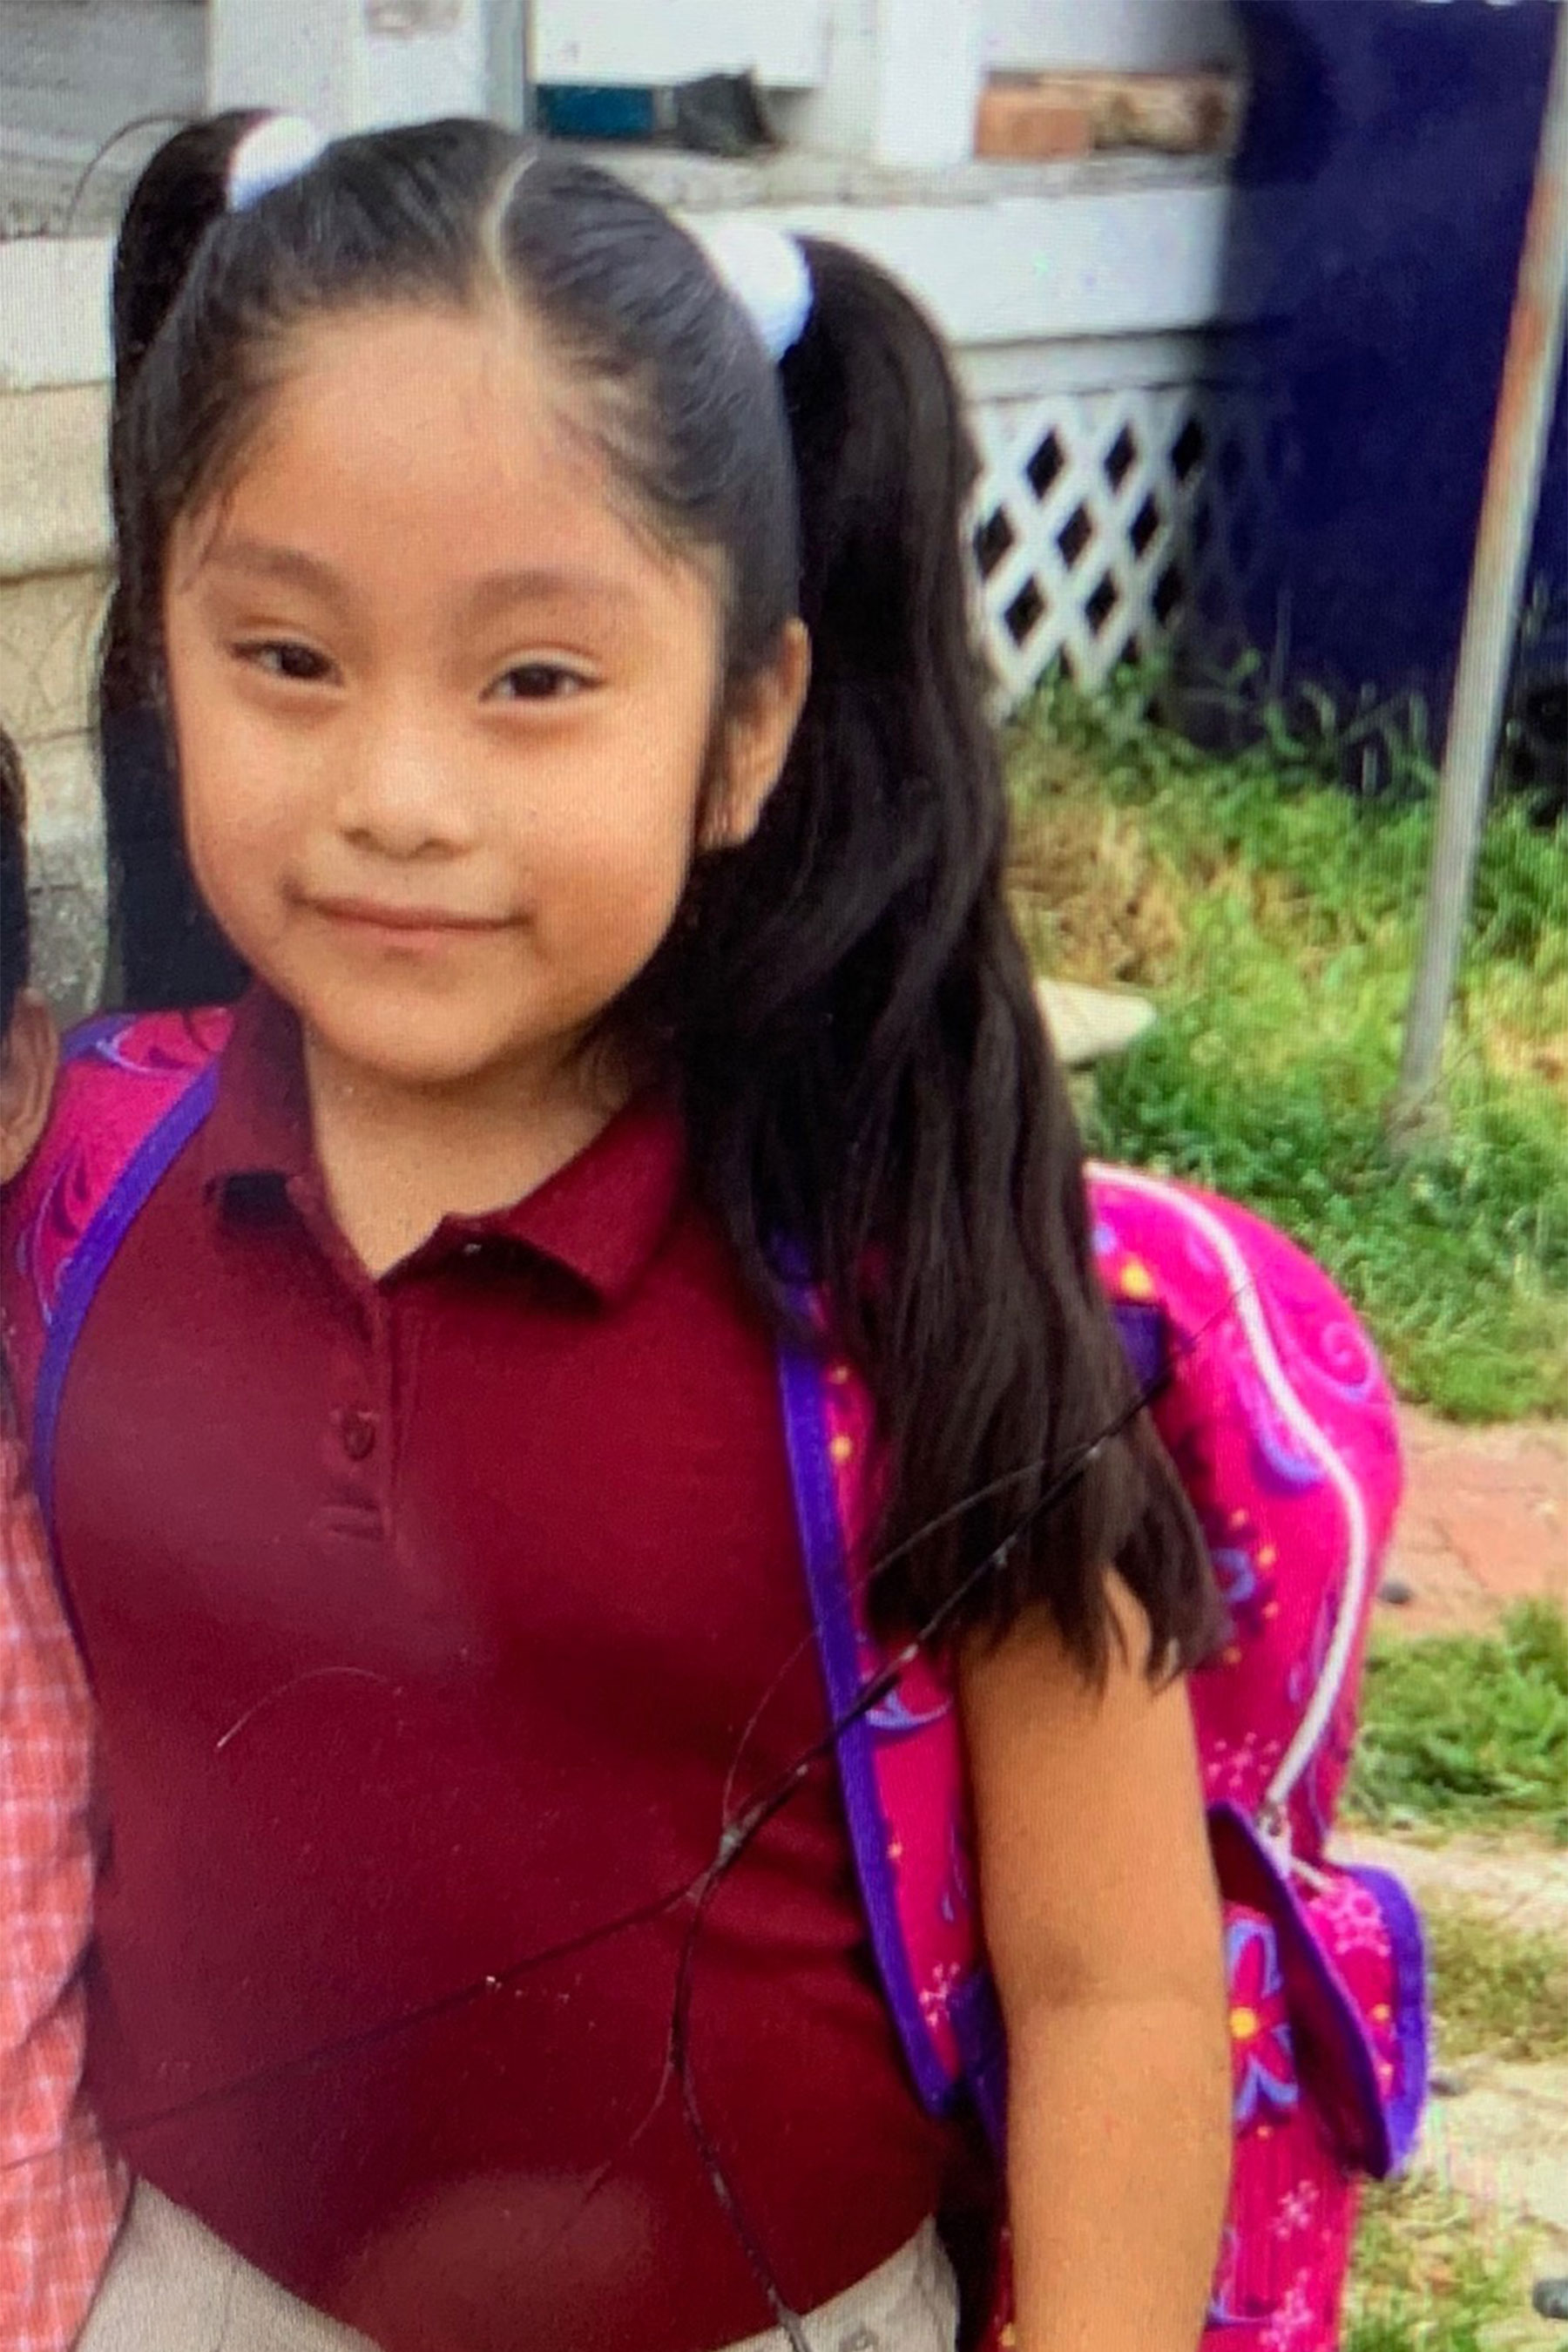 Authorities Searching for New Jersey 5-Year-Old Who Vanished From Playground